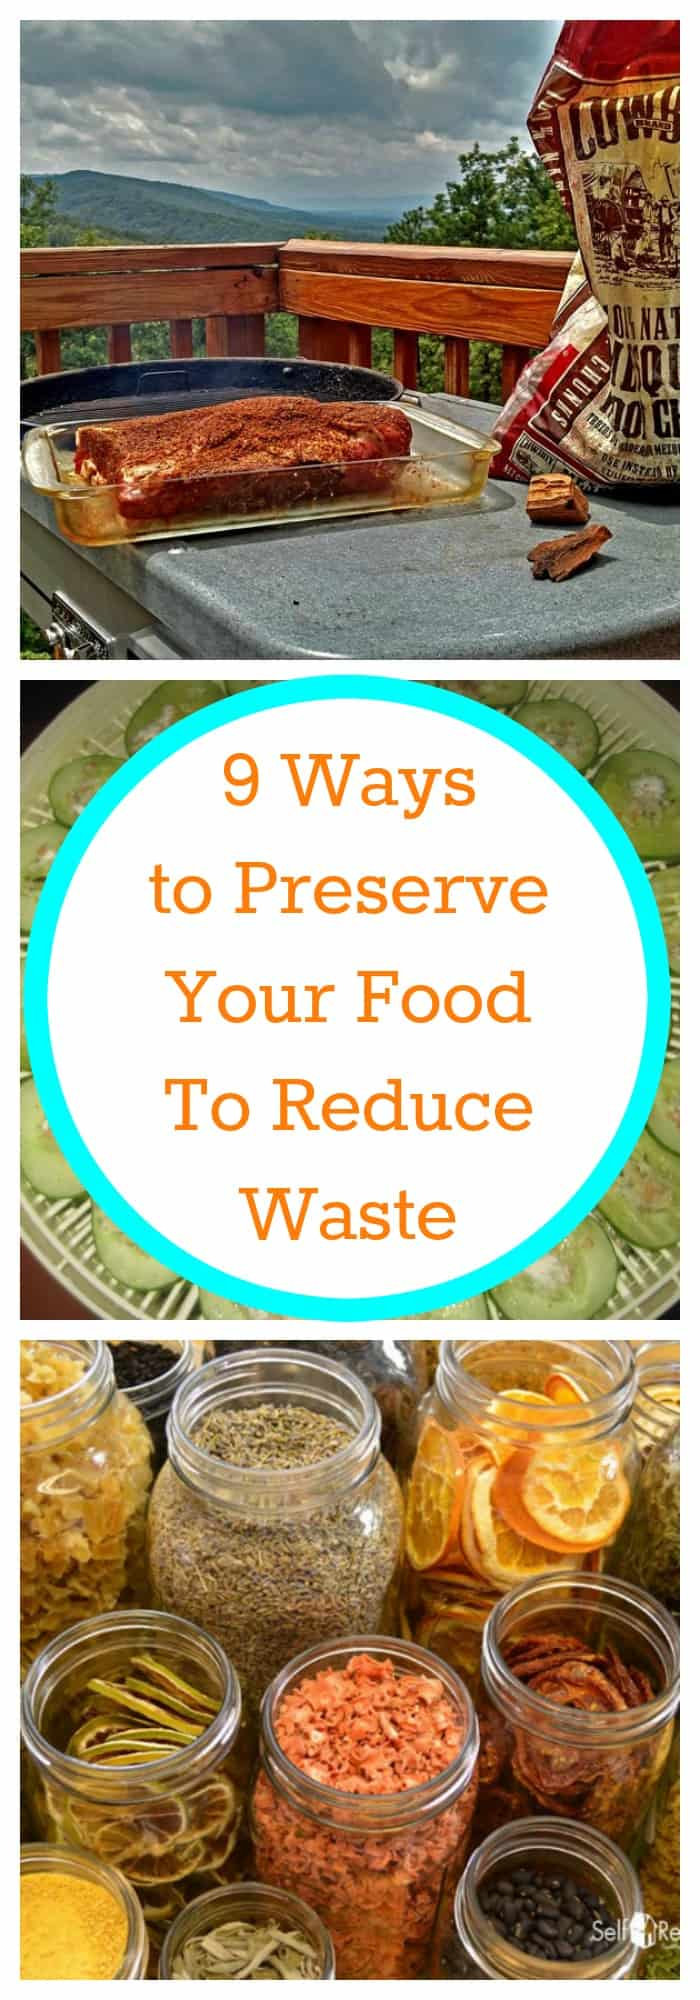 Food--9 Ways to Preserve Your Food to Reduce Waste--The Organized Mom